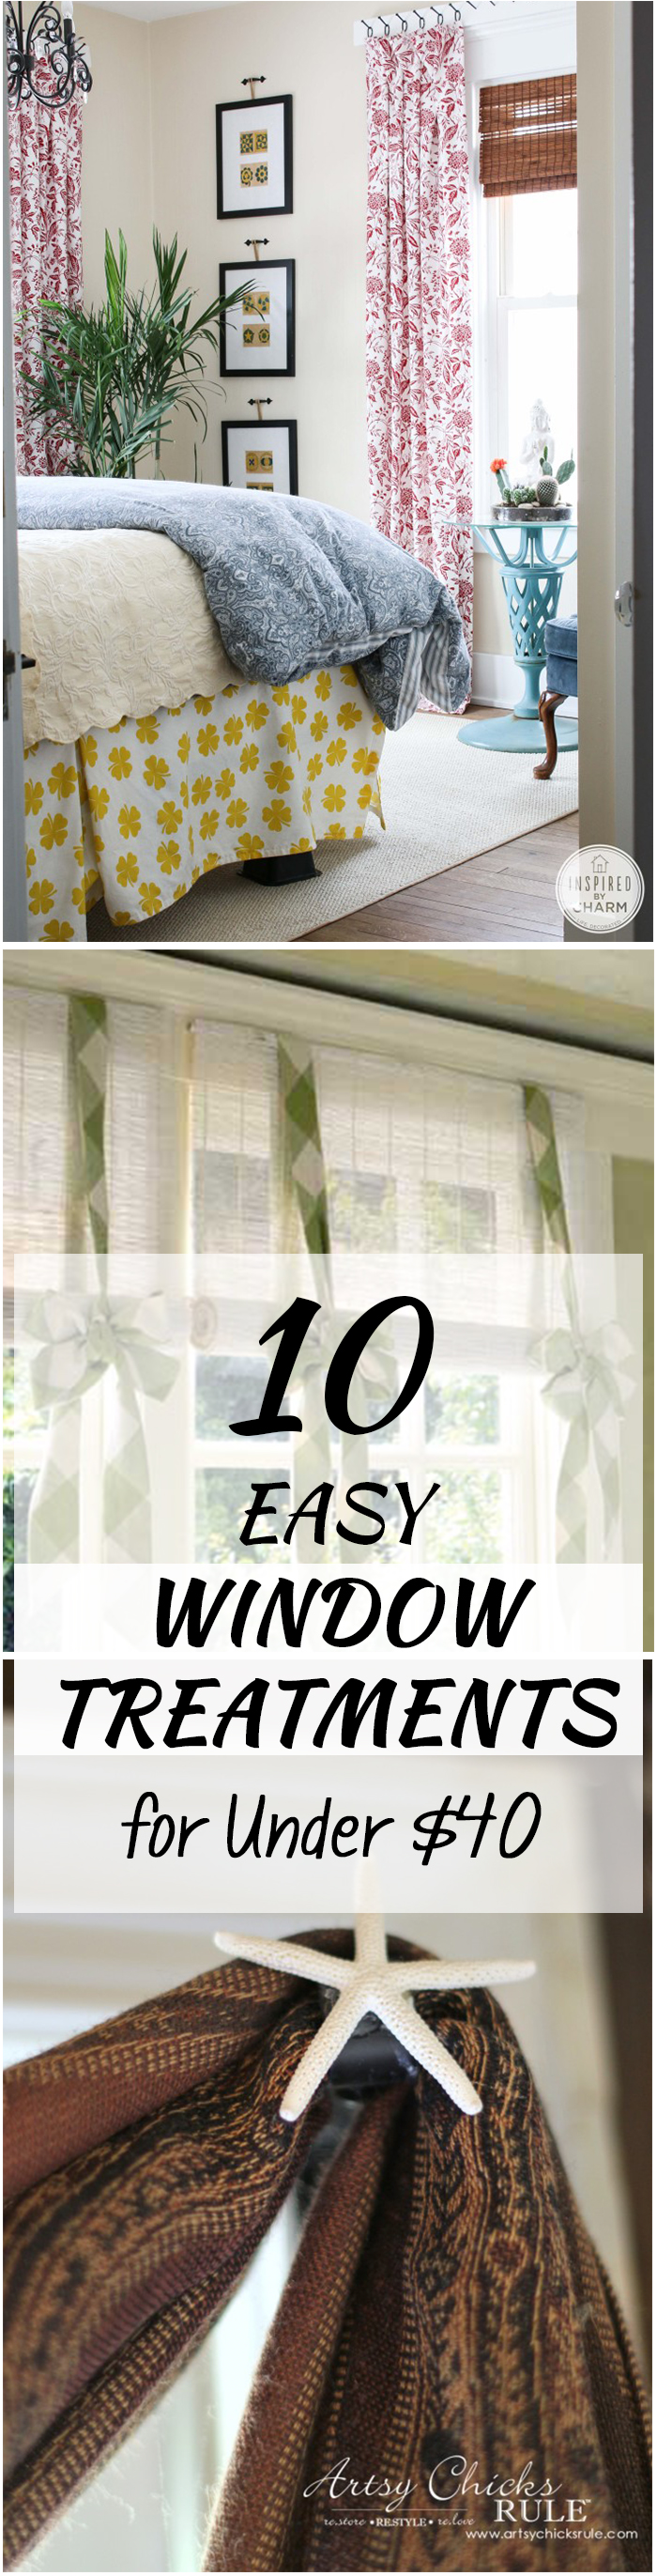 10 Easy Window Treatments for Under $40